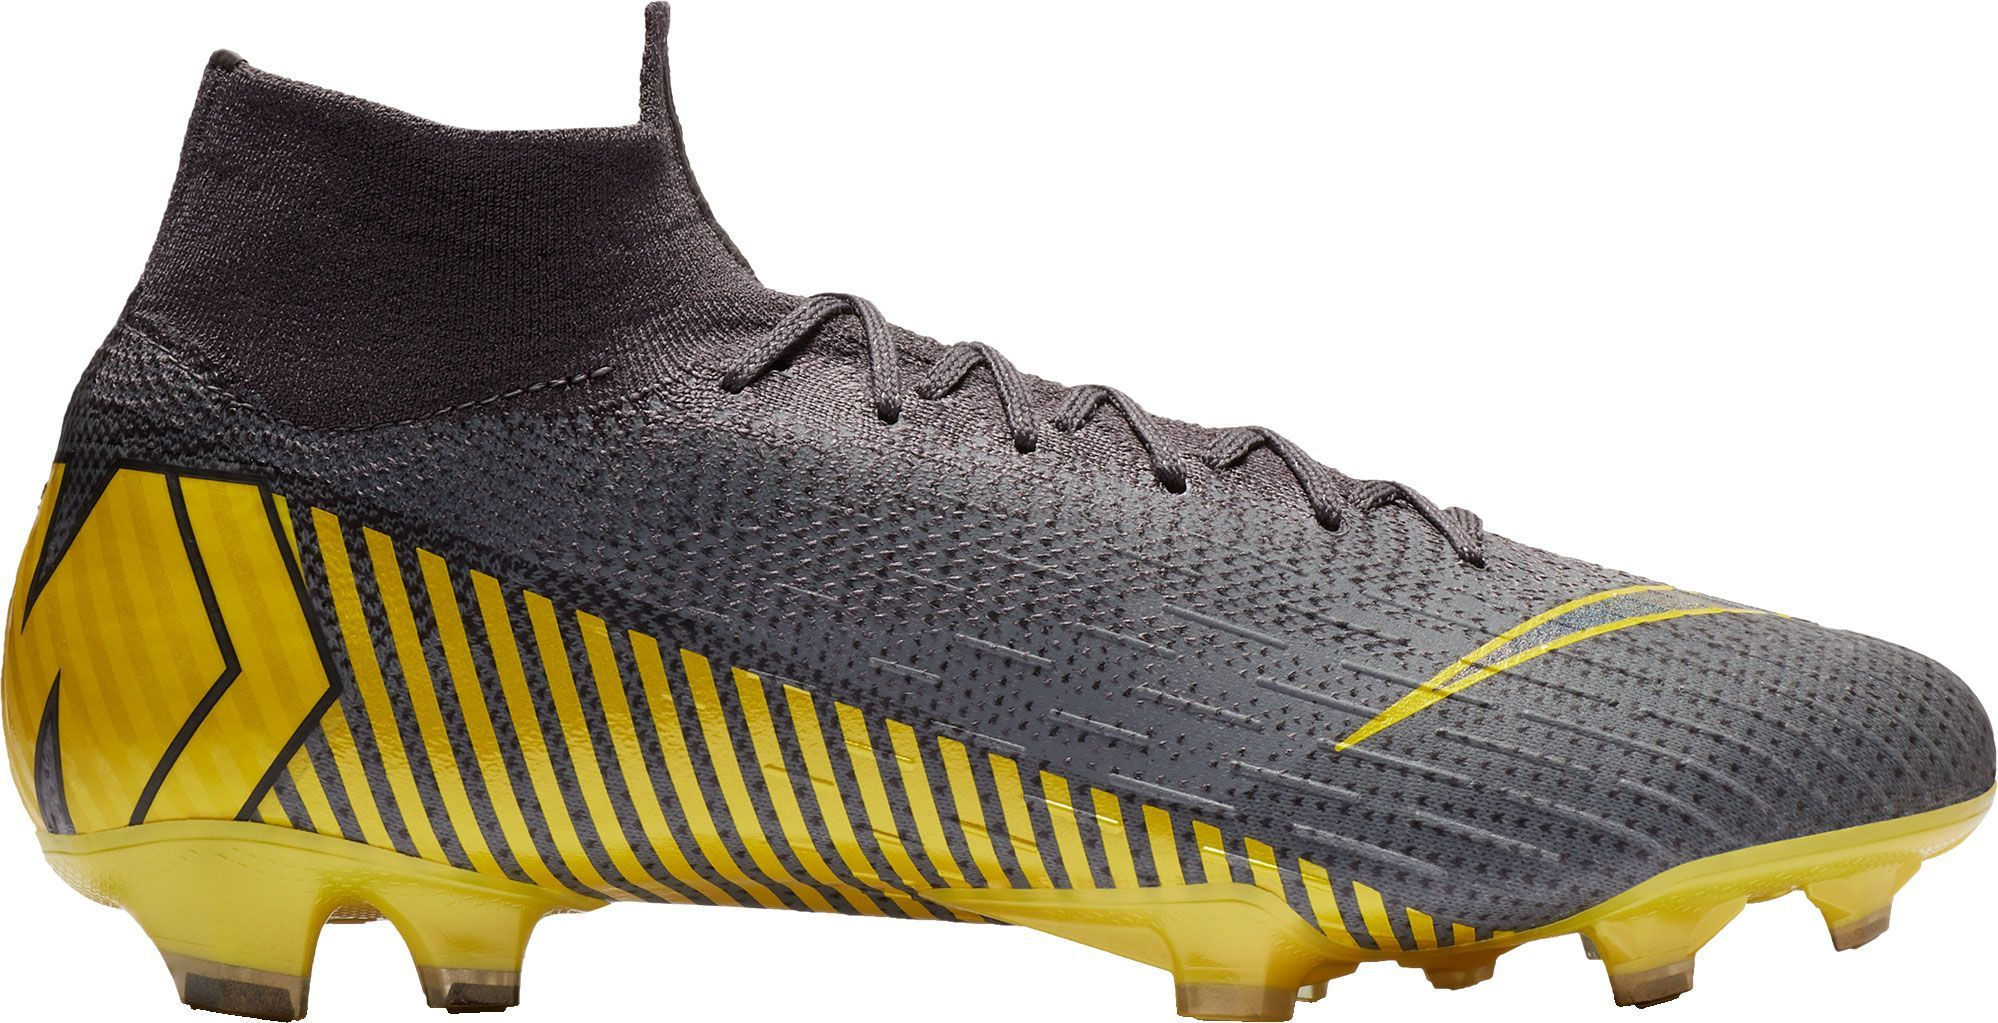 new arrival a6730 c9024 Nike Mercurial Superfly 360 Elite FG Soccer Cleats, Women s